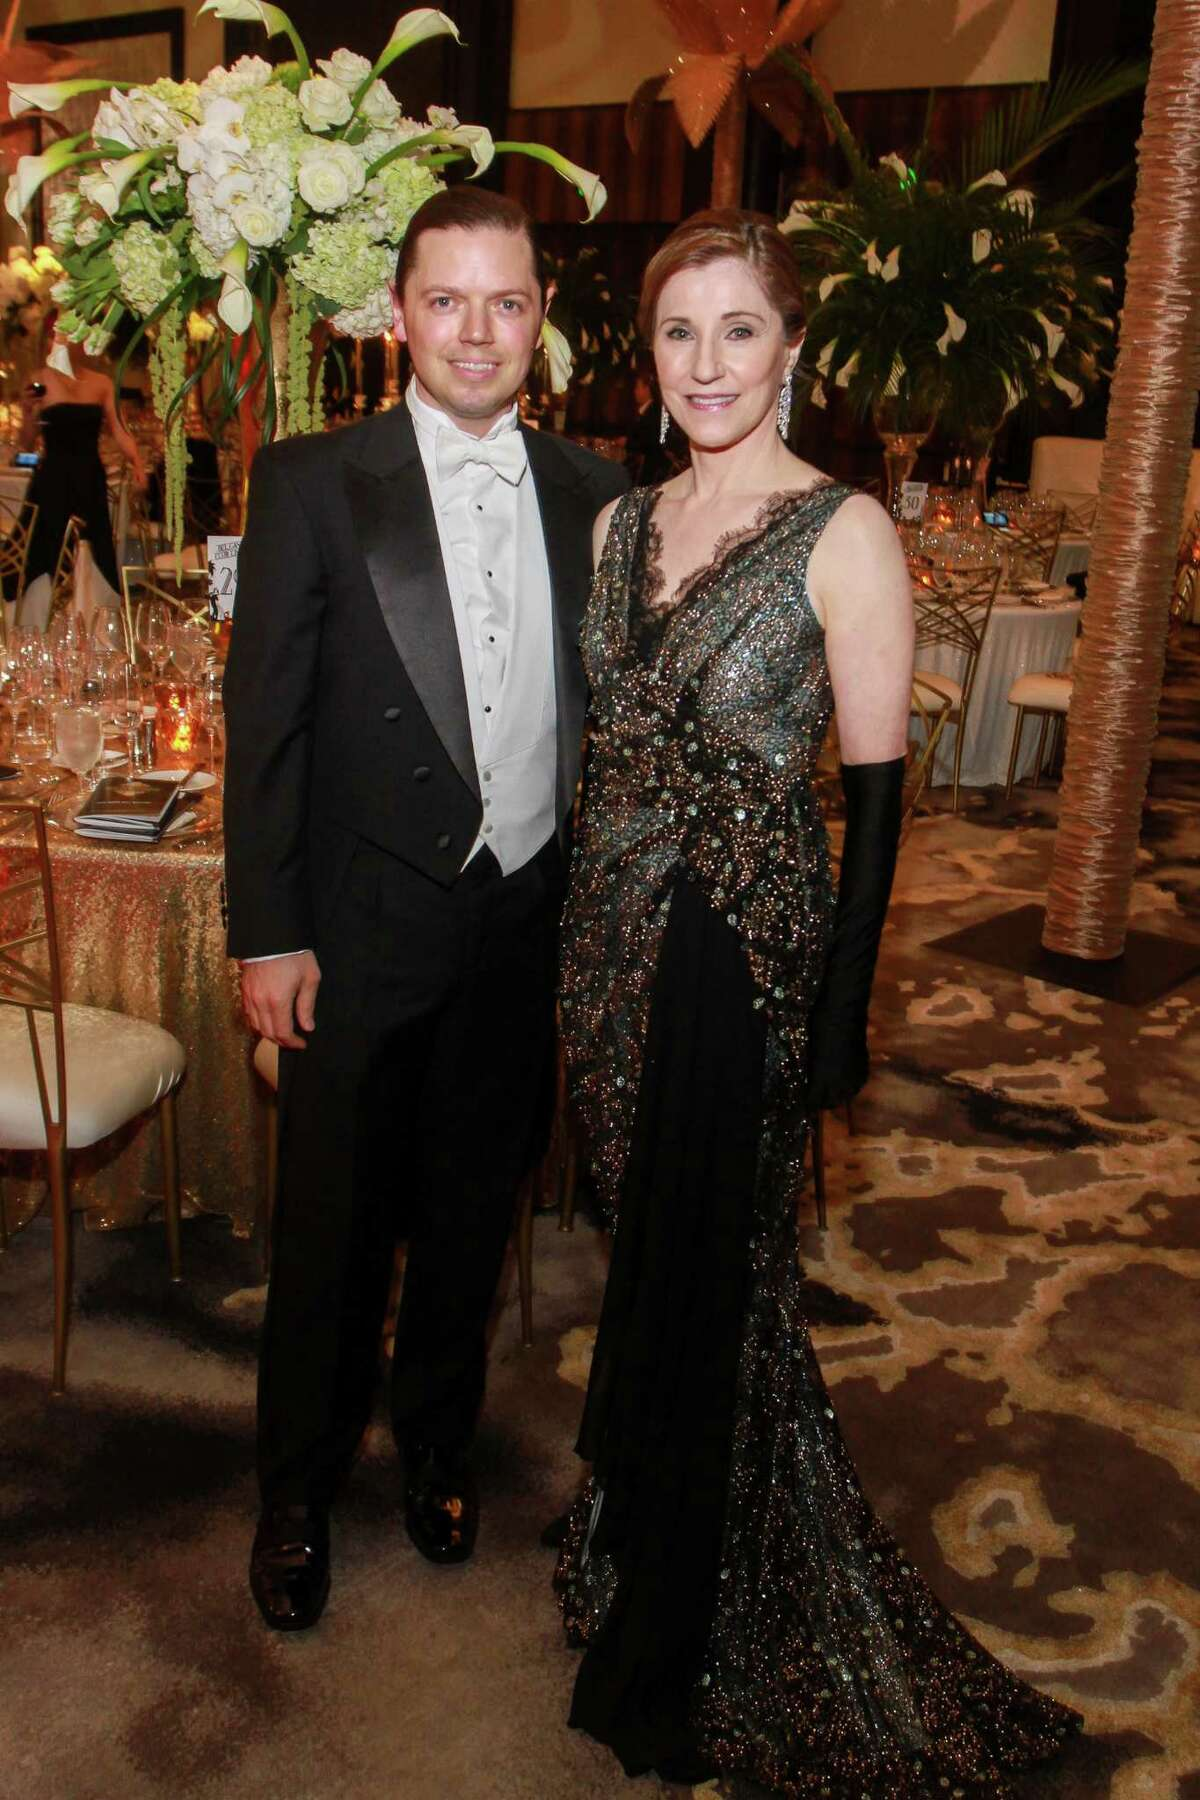 David Peck and chair Dr. Elizabeth Grimm at the Houston Grand Opera Ball.